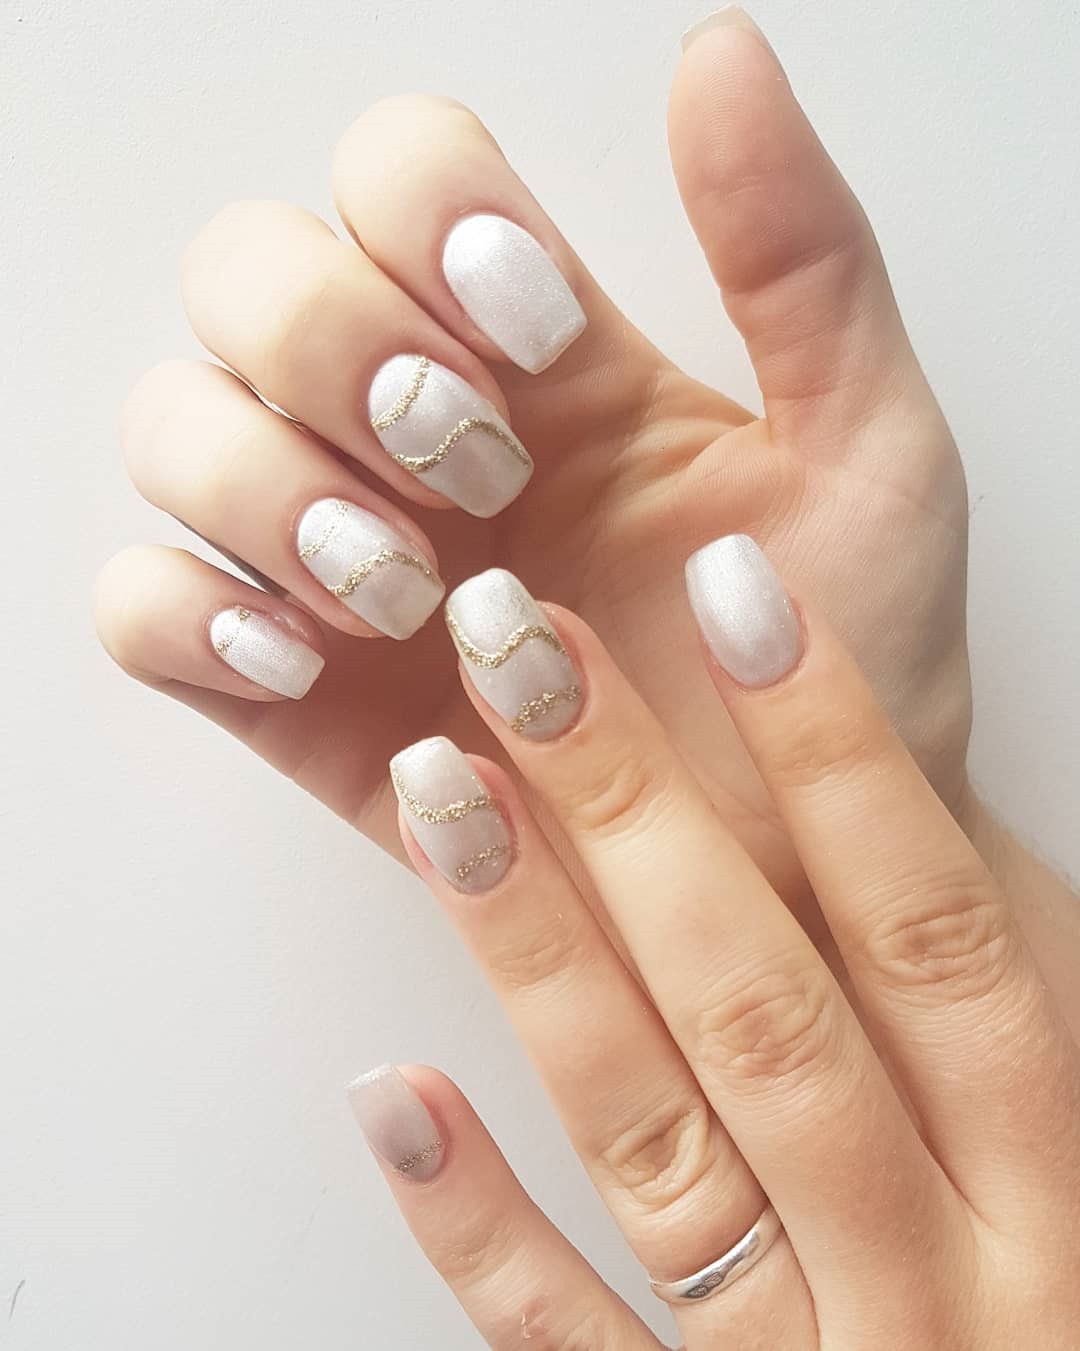 55 The Nail Art Trend Dominating Spring 2020